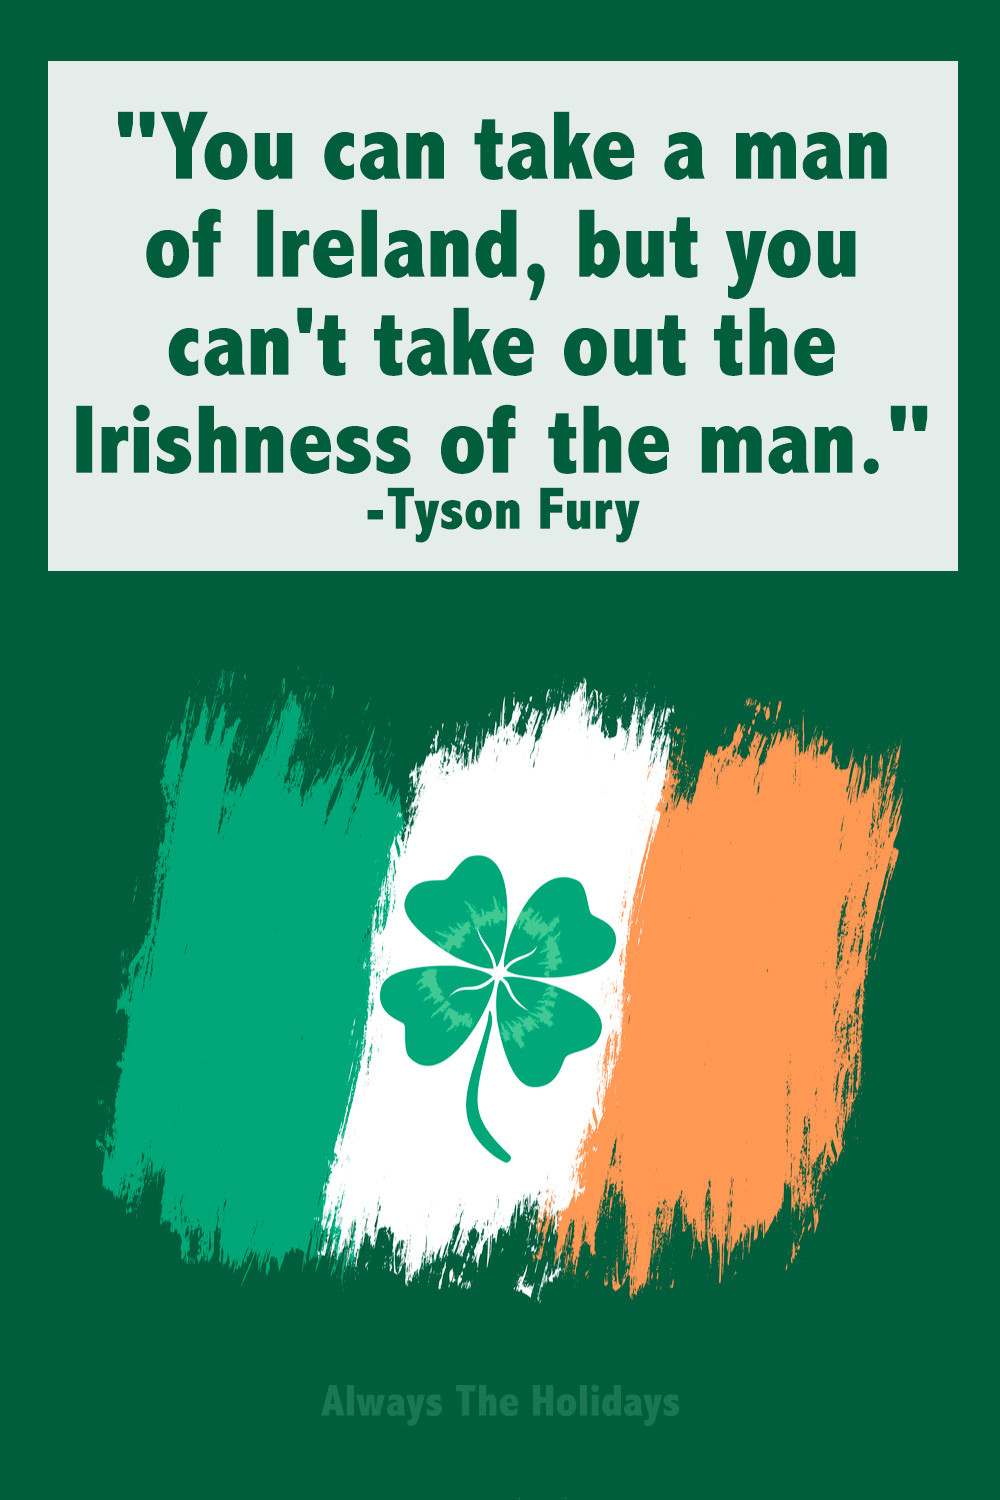 An Irish flag with a four leaf cover on it and a St. Patrick's Day quotes text overlay.